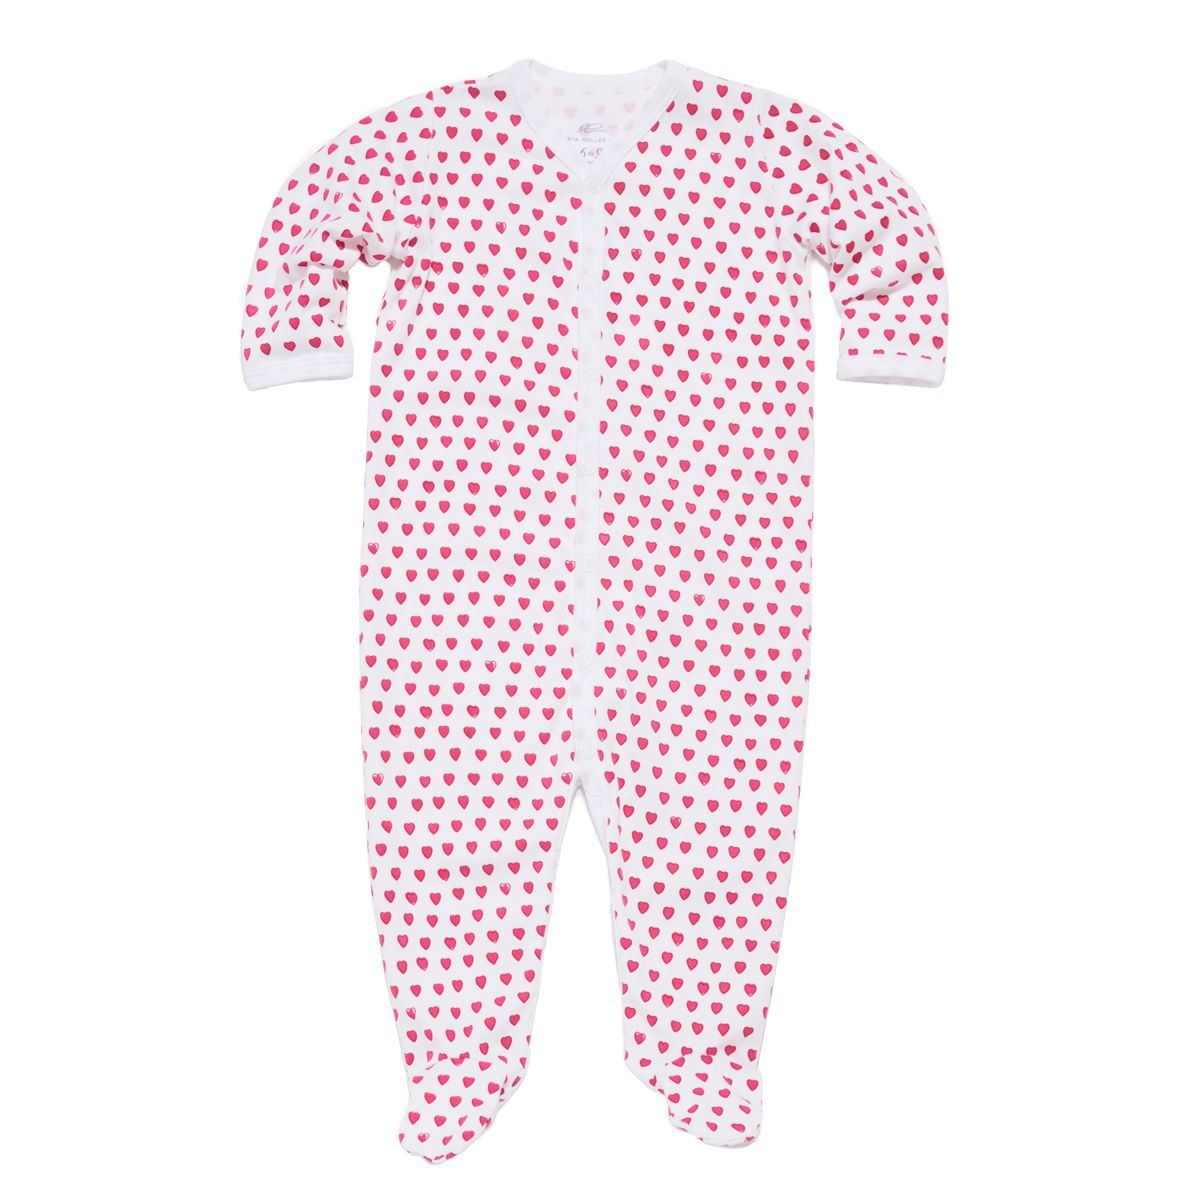 Infants Snap Pajama Suit Hearts Pink